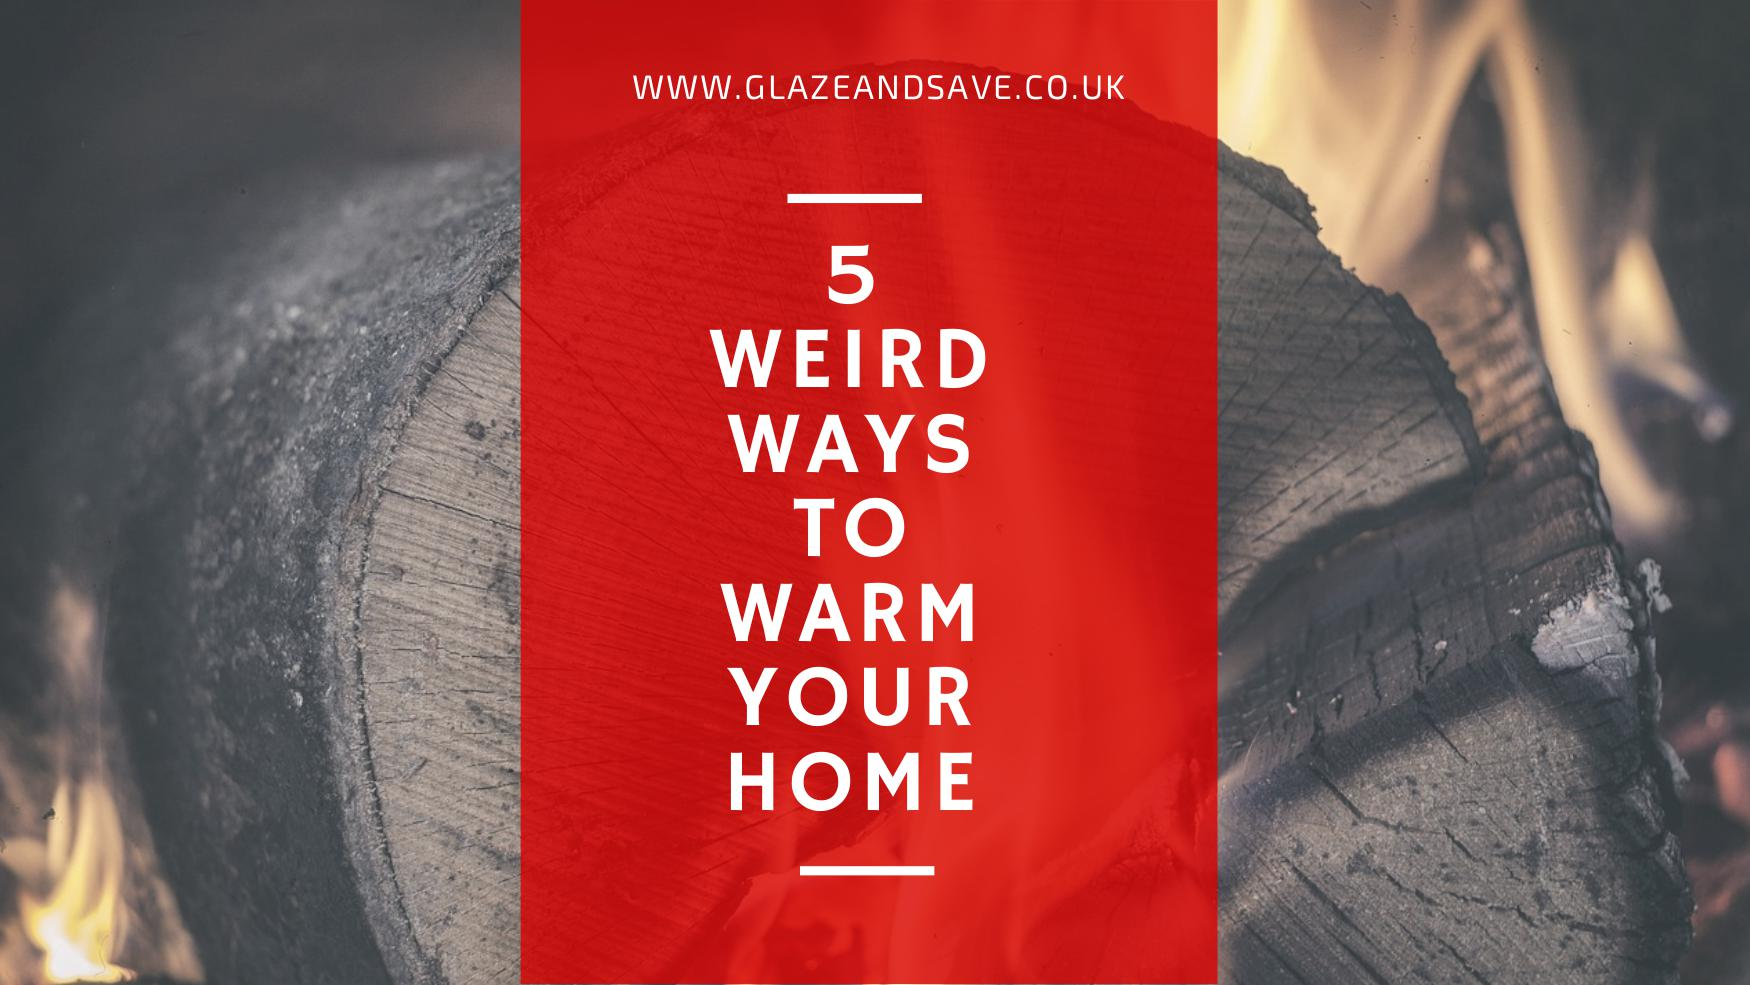 5 weird ways to warm your home by Glaze & Save bespoke magnetic secondary glazing and draught proofing based in Perth UK.